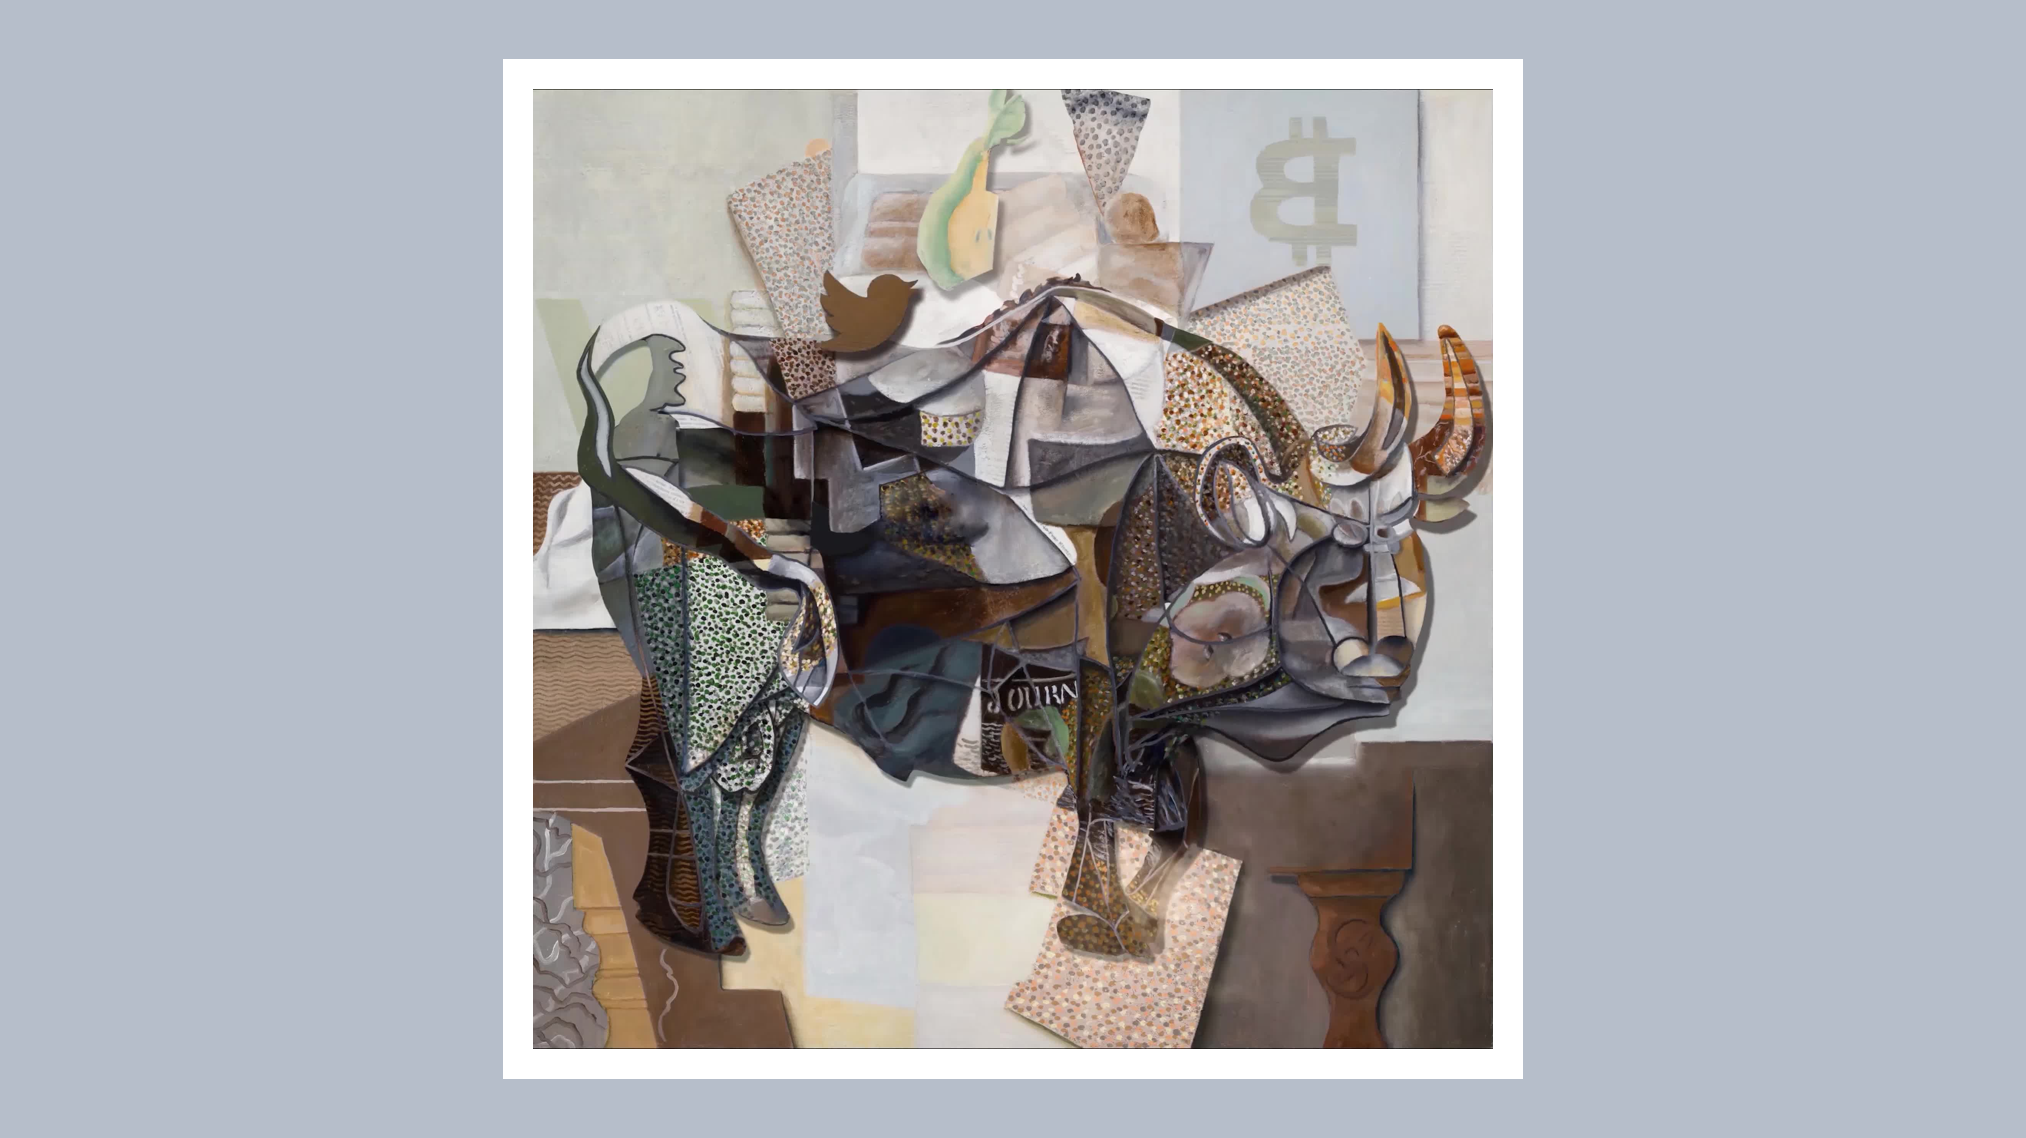 Non-fungible Digital Art Work Sale Shatters Records, 'Picasso' s Bull' NFT Sells for $55 K 3